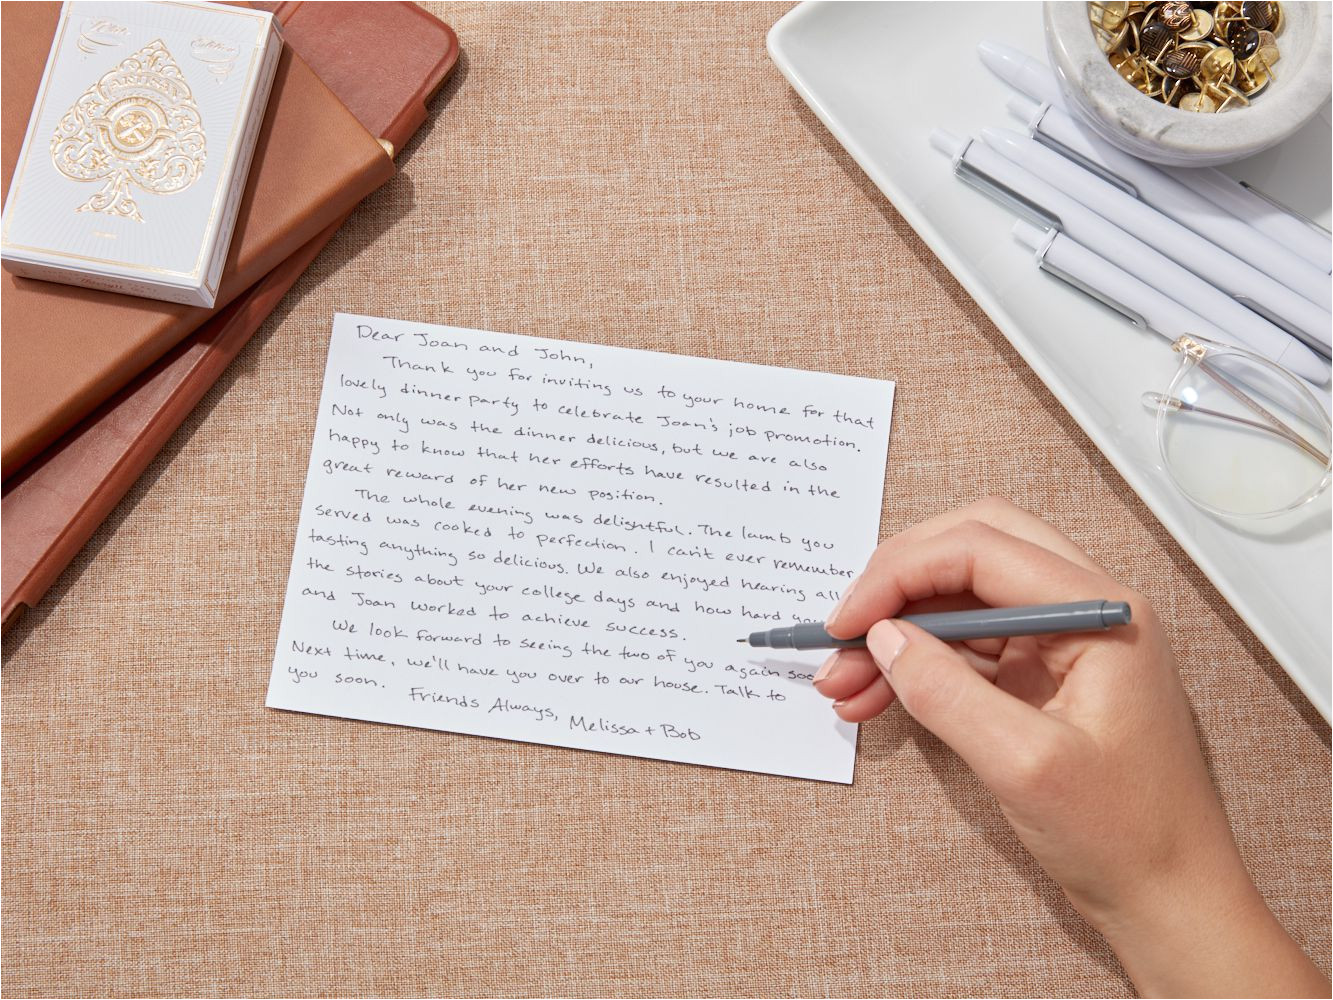 hospitality thank you letter examples 1216766 hero 3237 f6bf38c139264cddb1114dc89115801c jpg